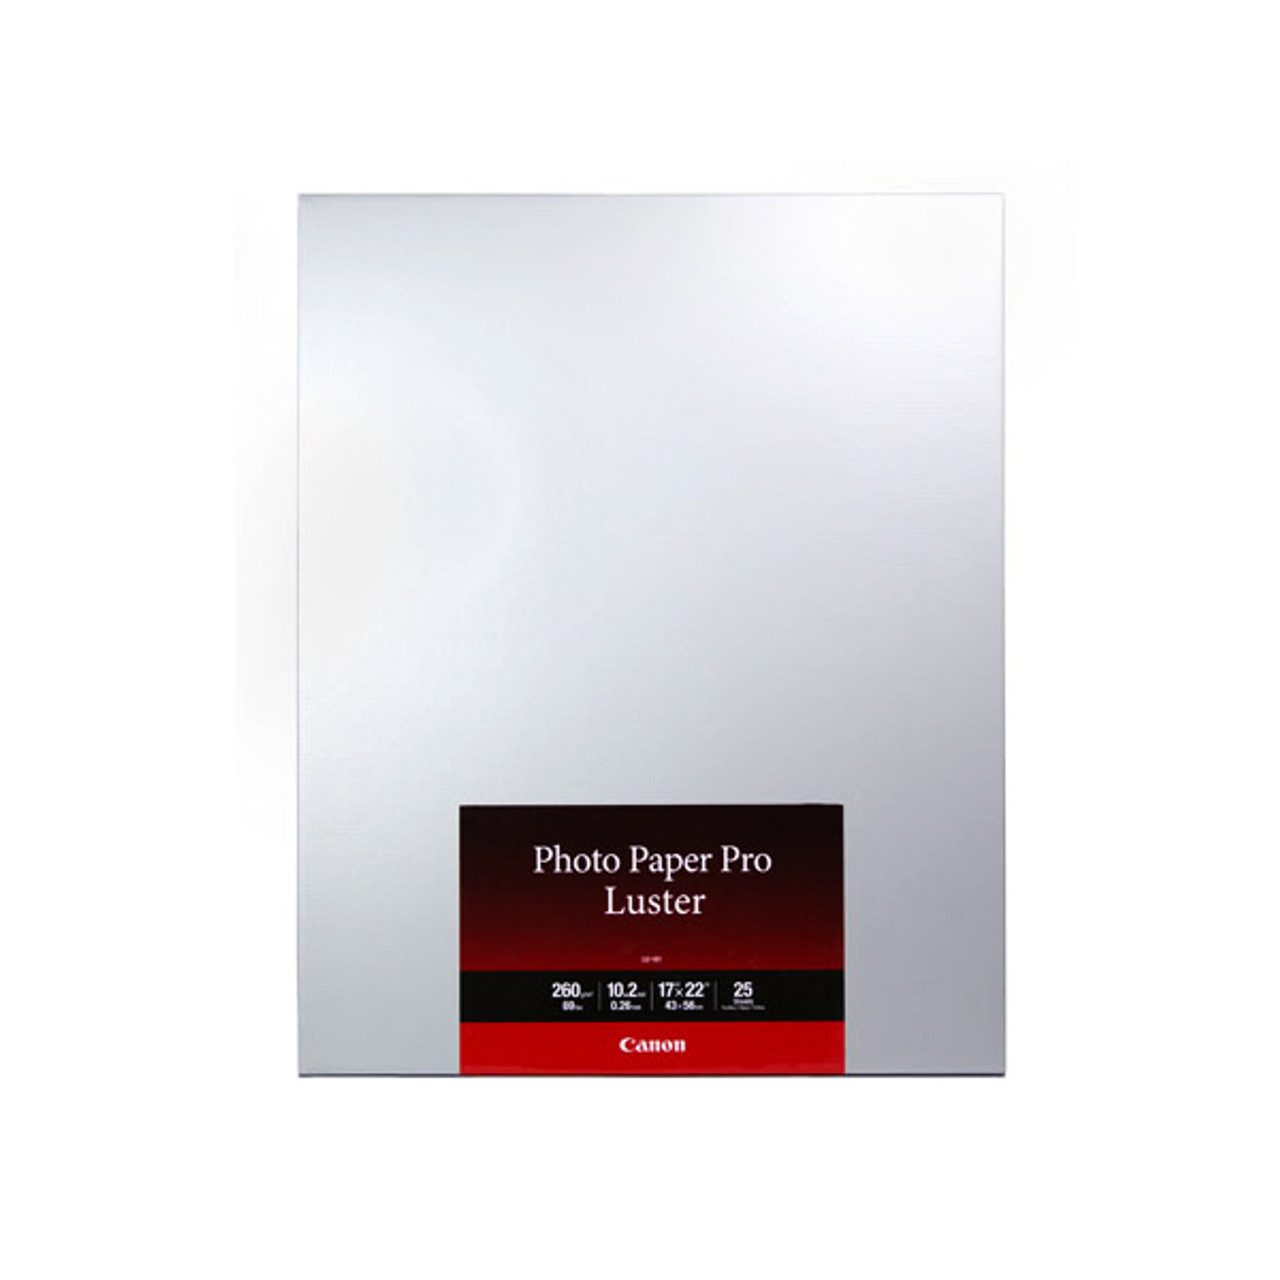 "Canon LU-101 17"" x 22"" Luster Photo Paper Pro (25 sheets)"